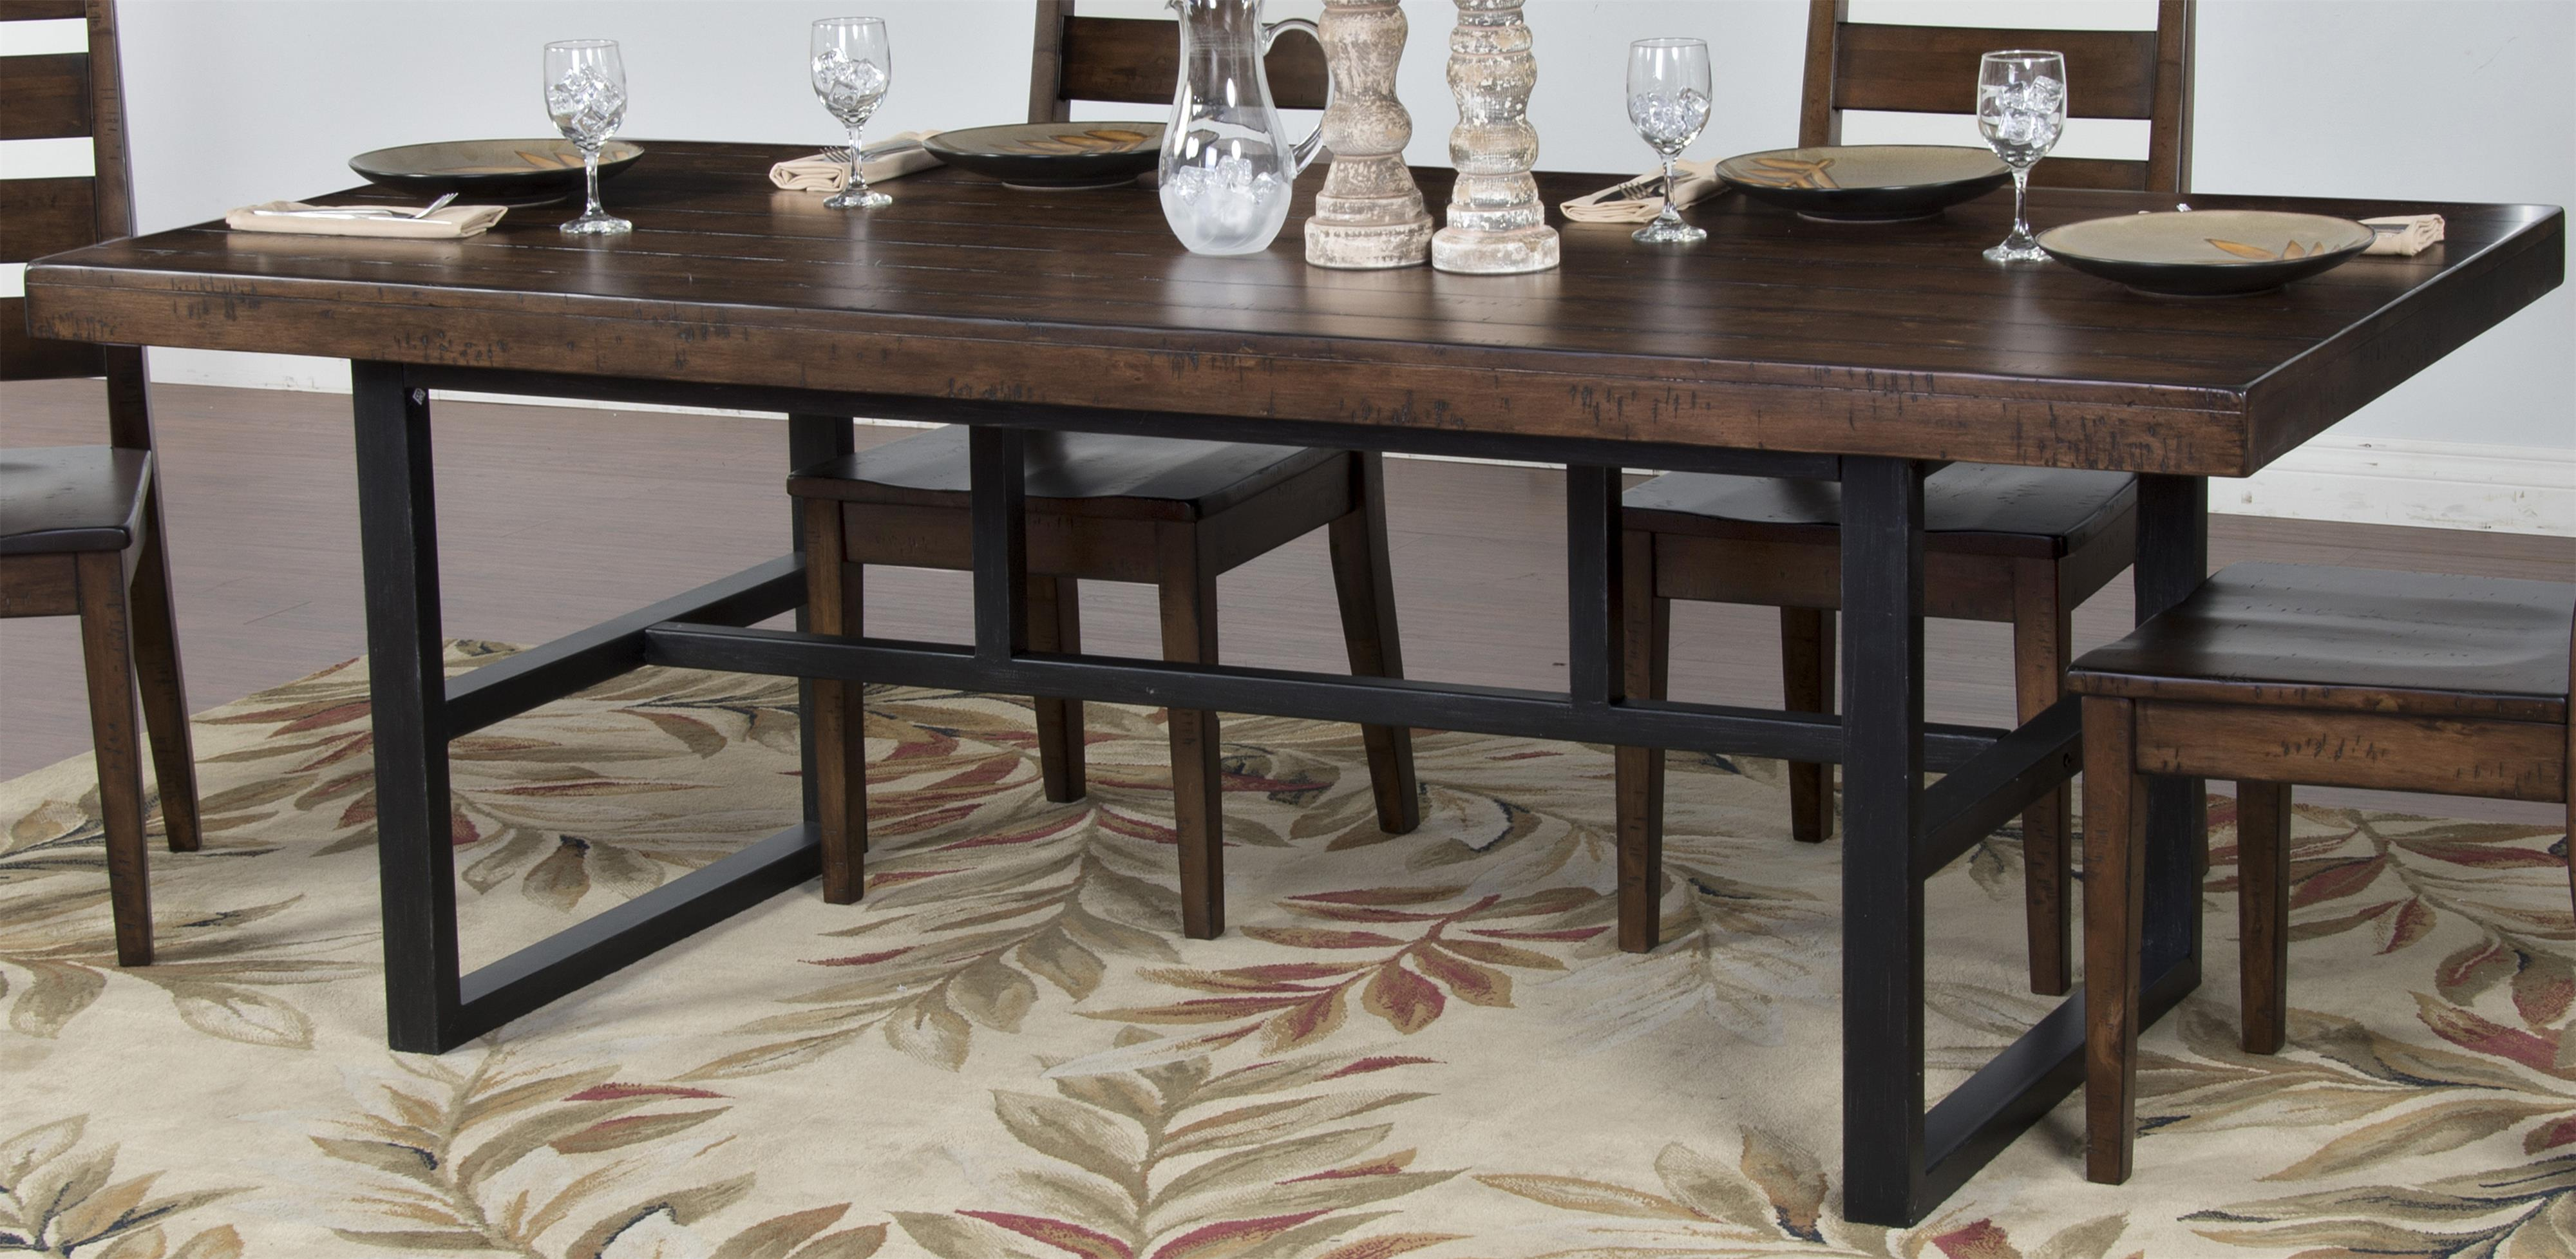 Morris Home Furnishings Wellman Wellman Dining Table - Item Number: 317833297